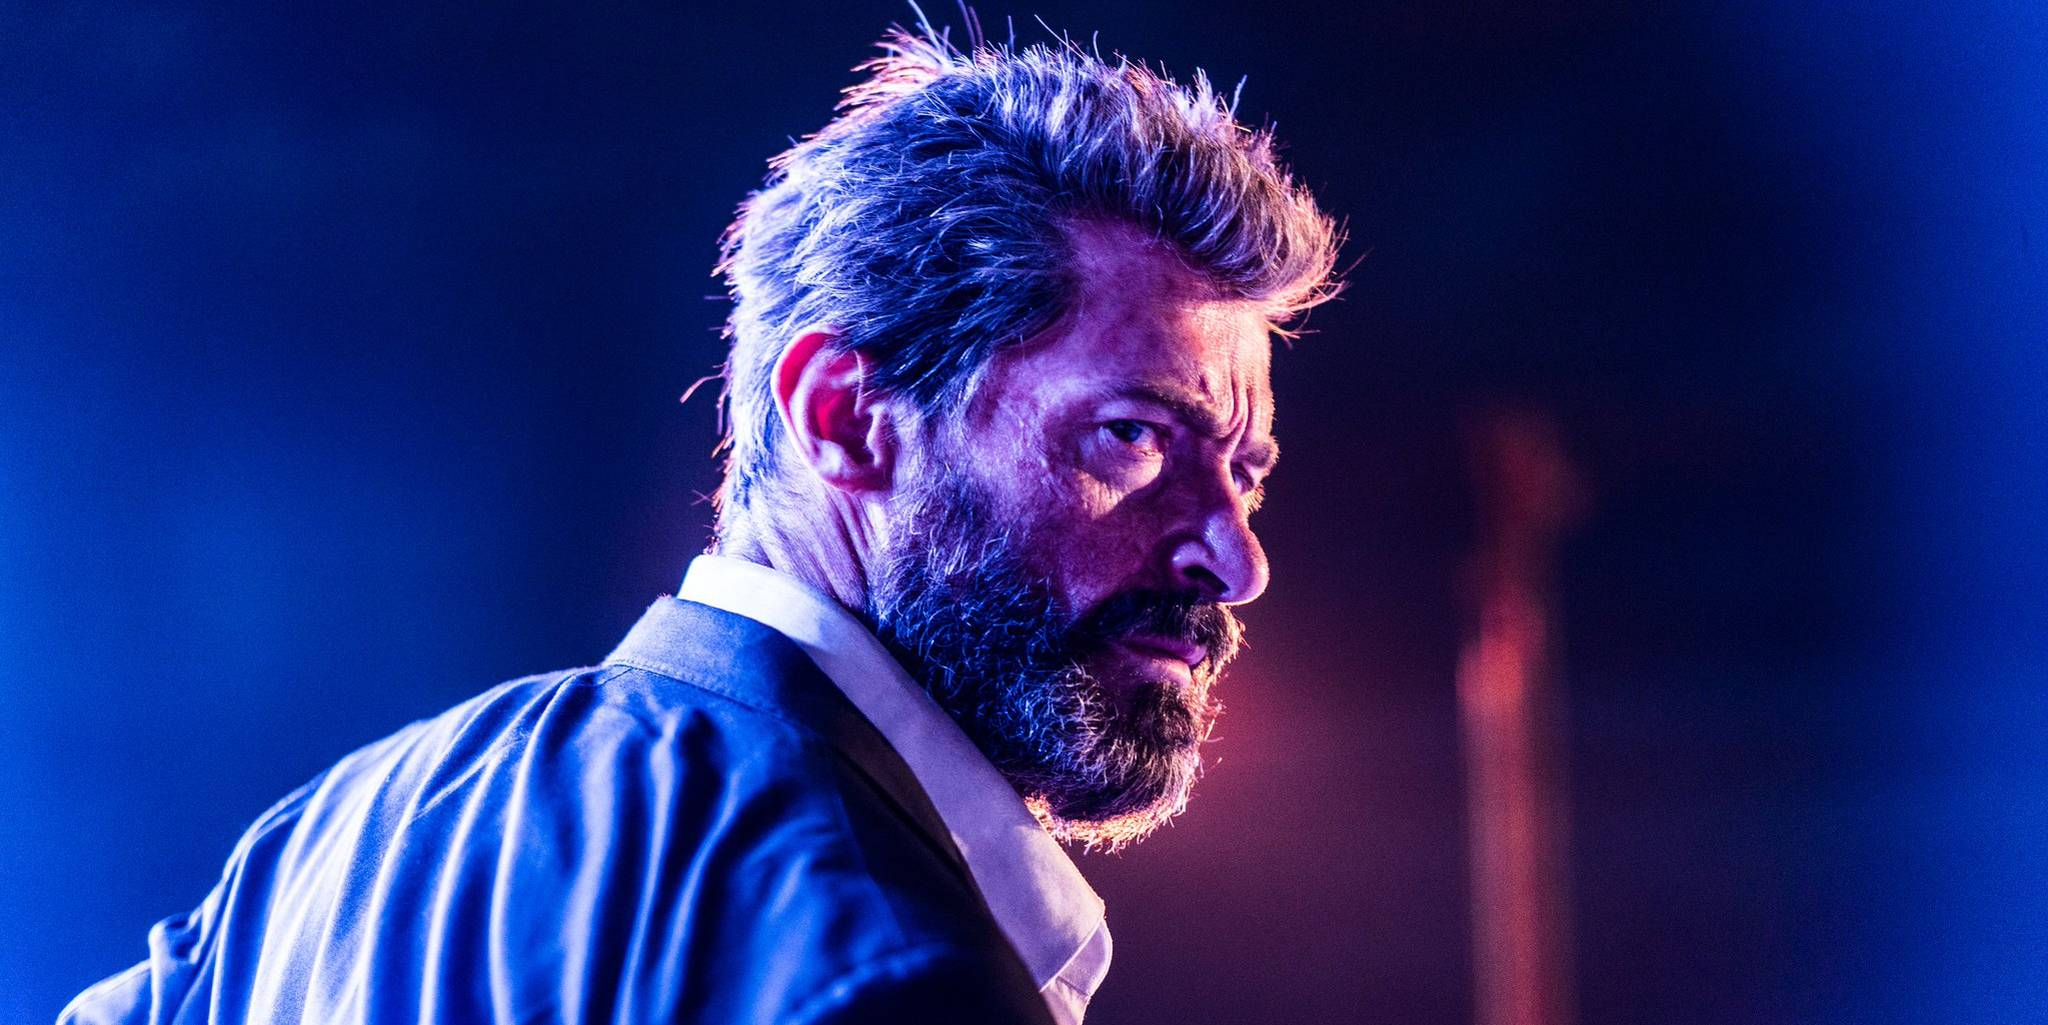 Last year's 'Logan' is a prime example of a studio giant taking a chance that paid off.